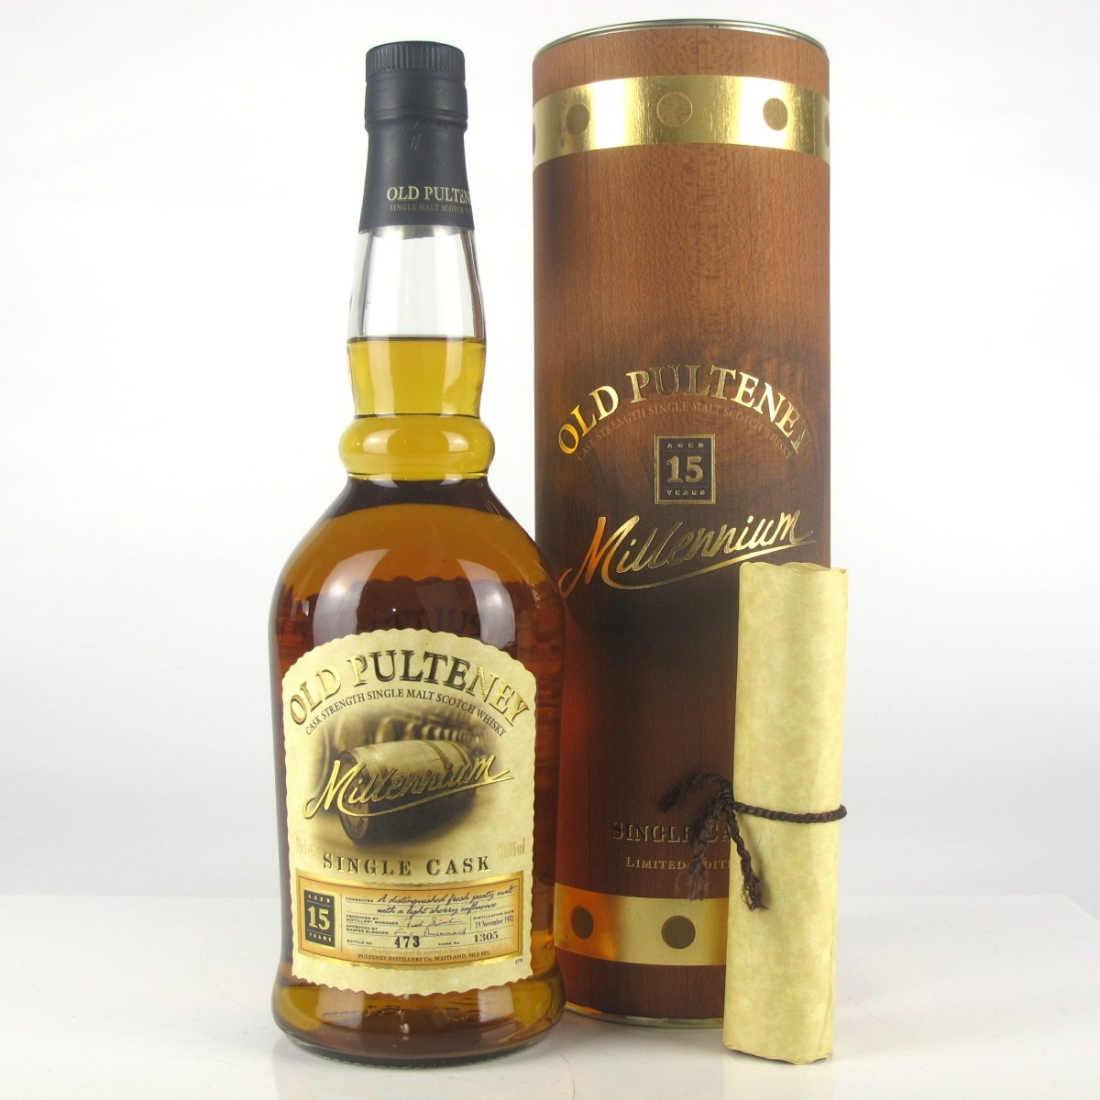 Old Pulteney 1982 15 Year Old / Millennium Single Cask